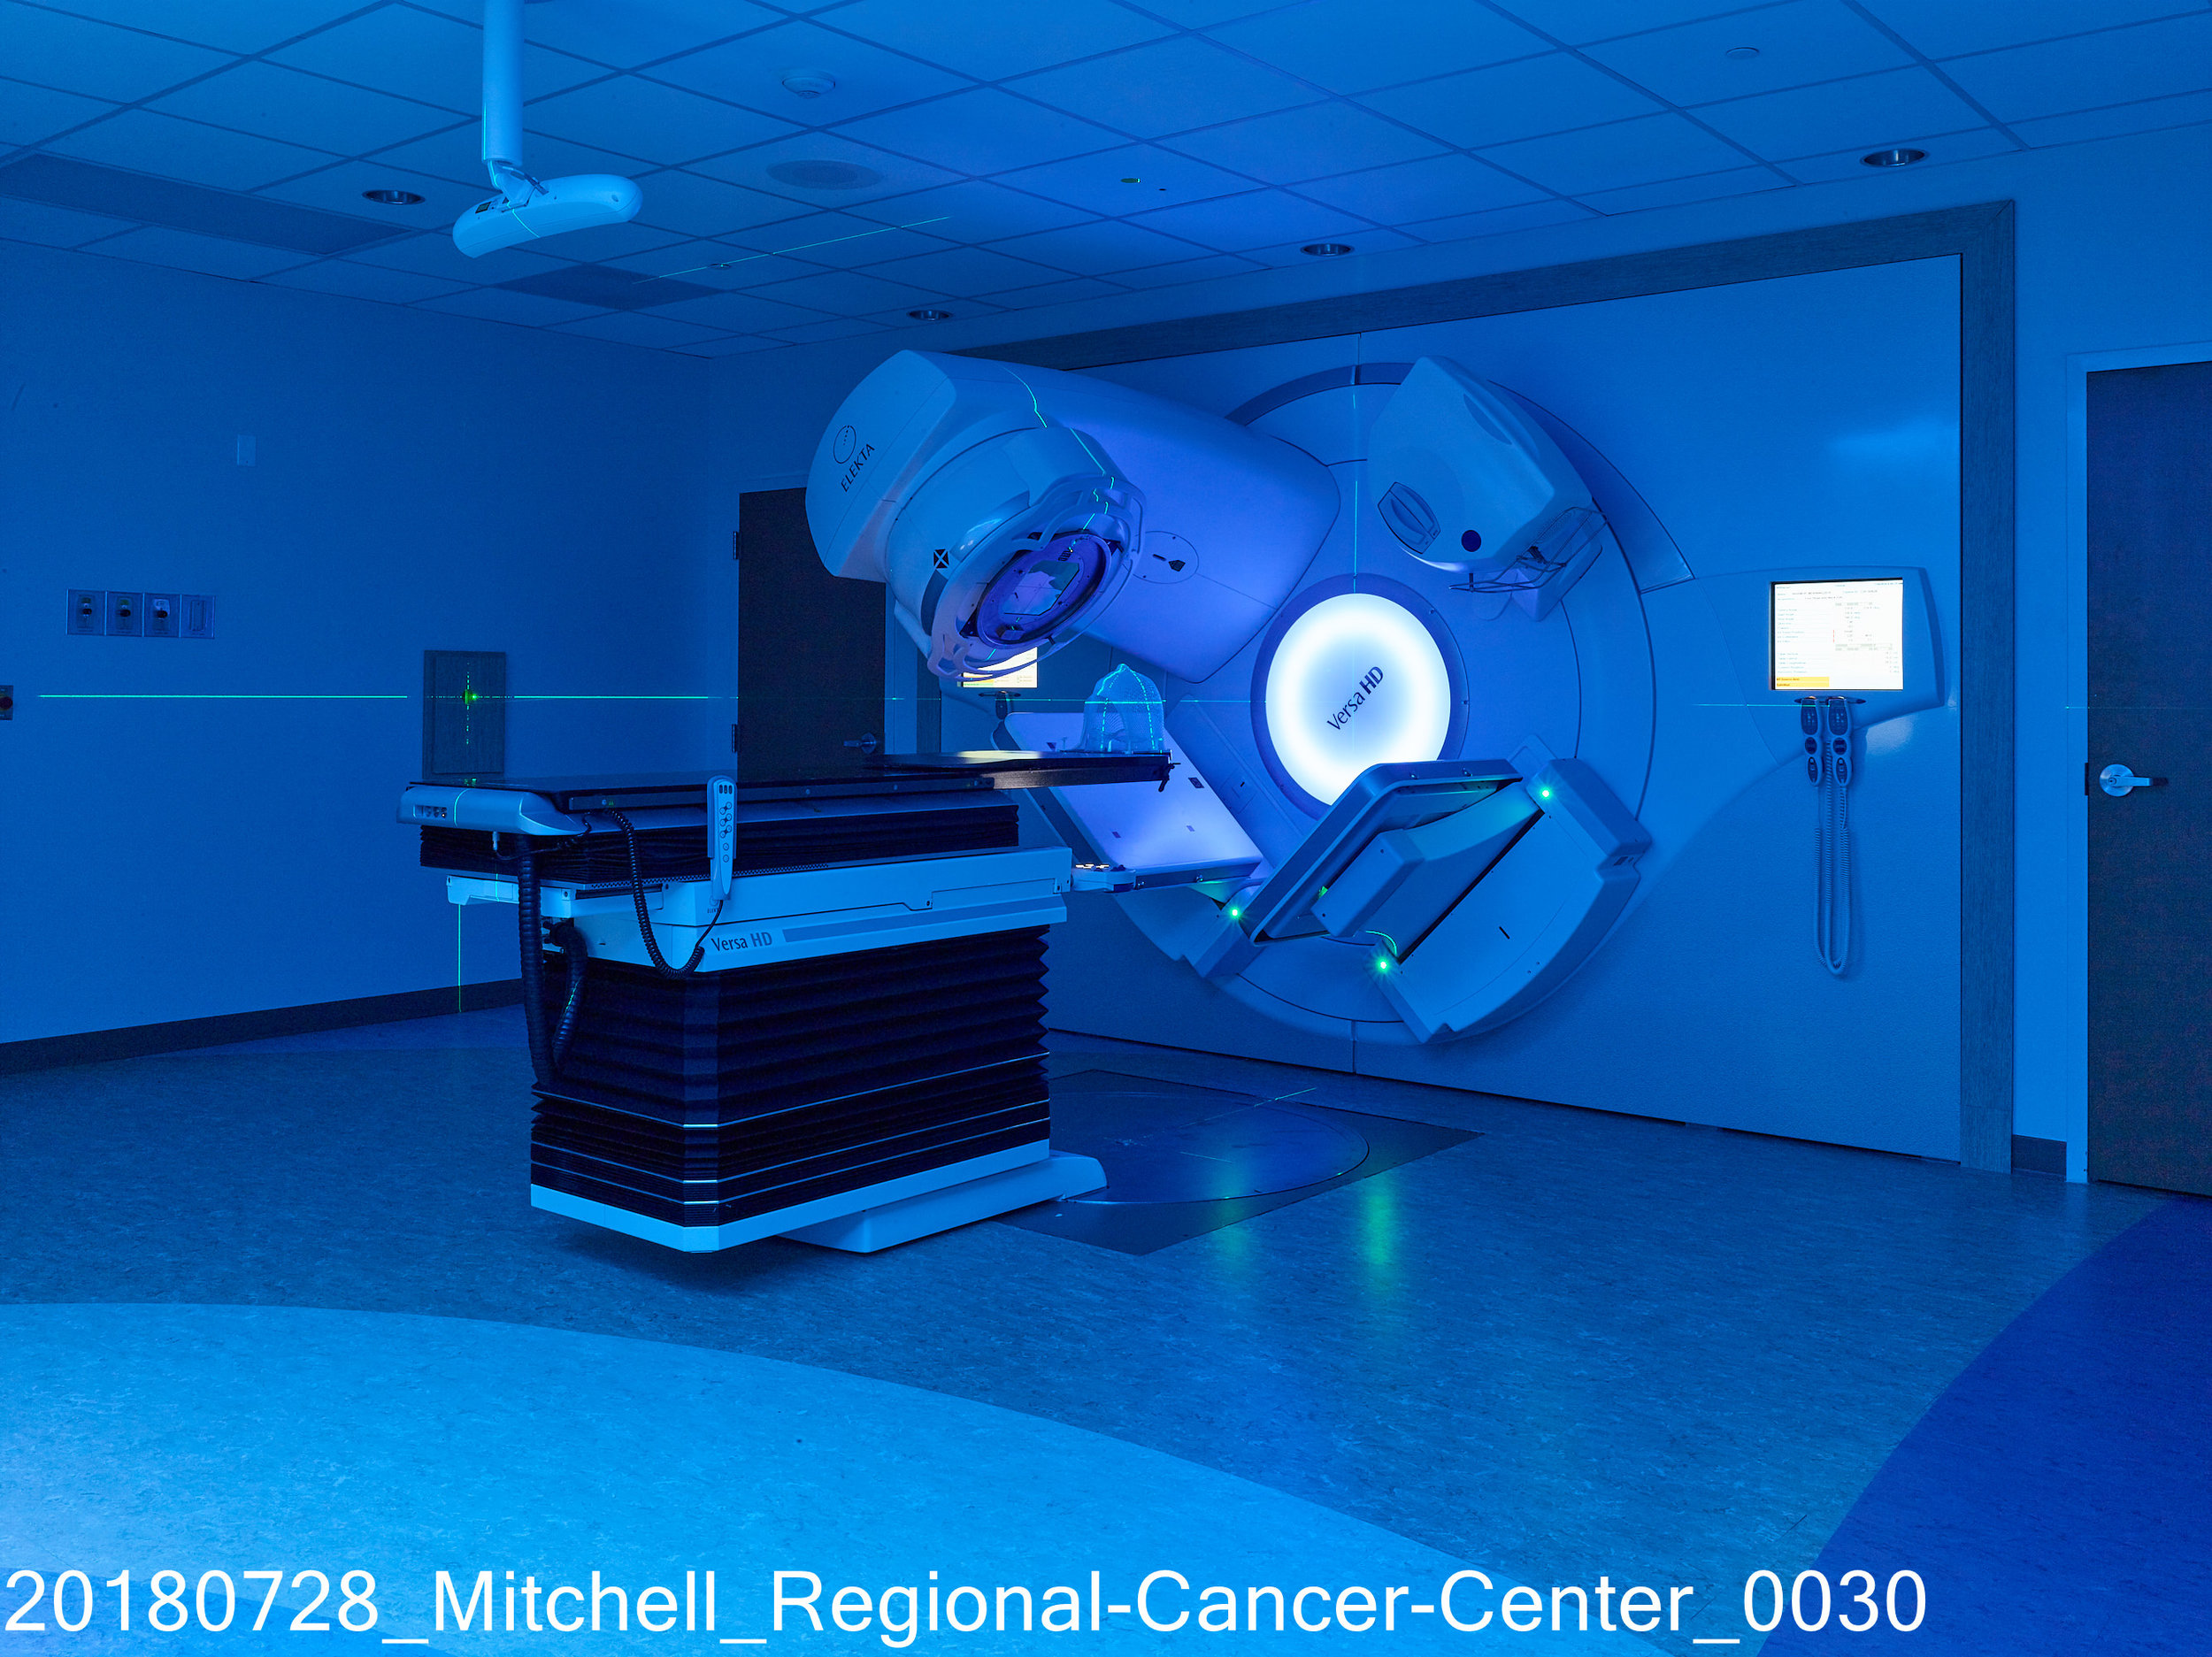 20180728_Mitchell_Regional-Cancer-Center_0030.jpg